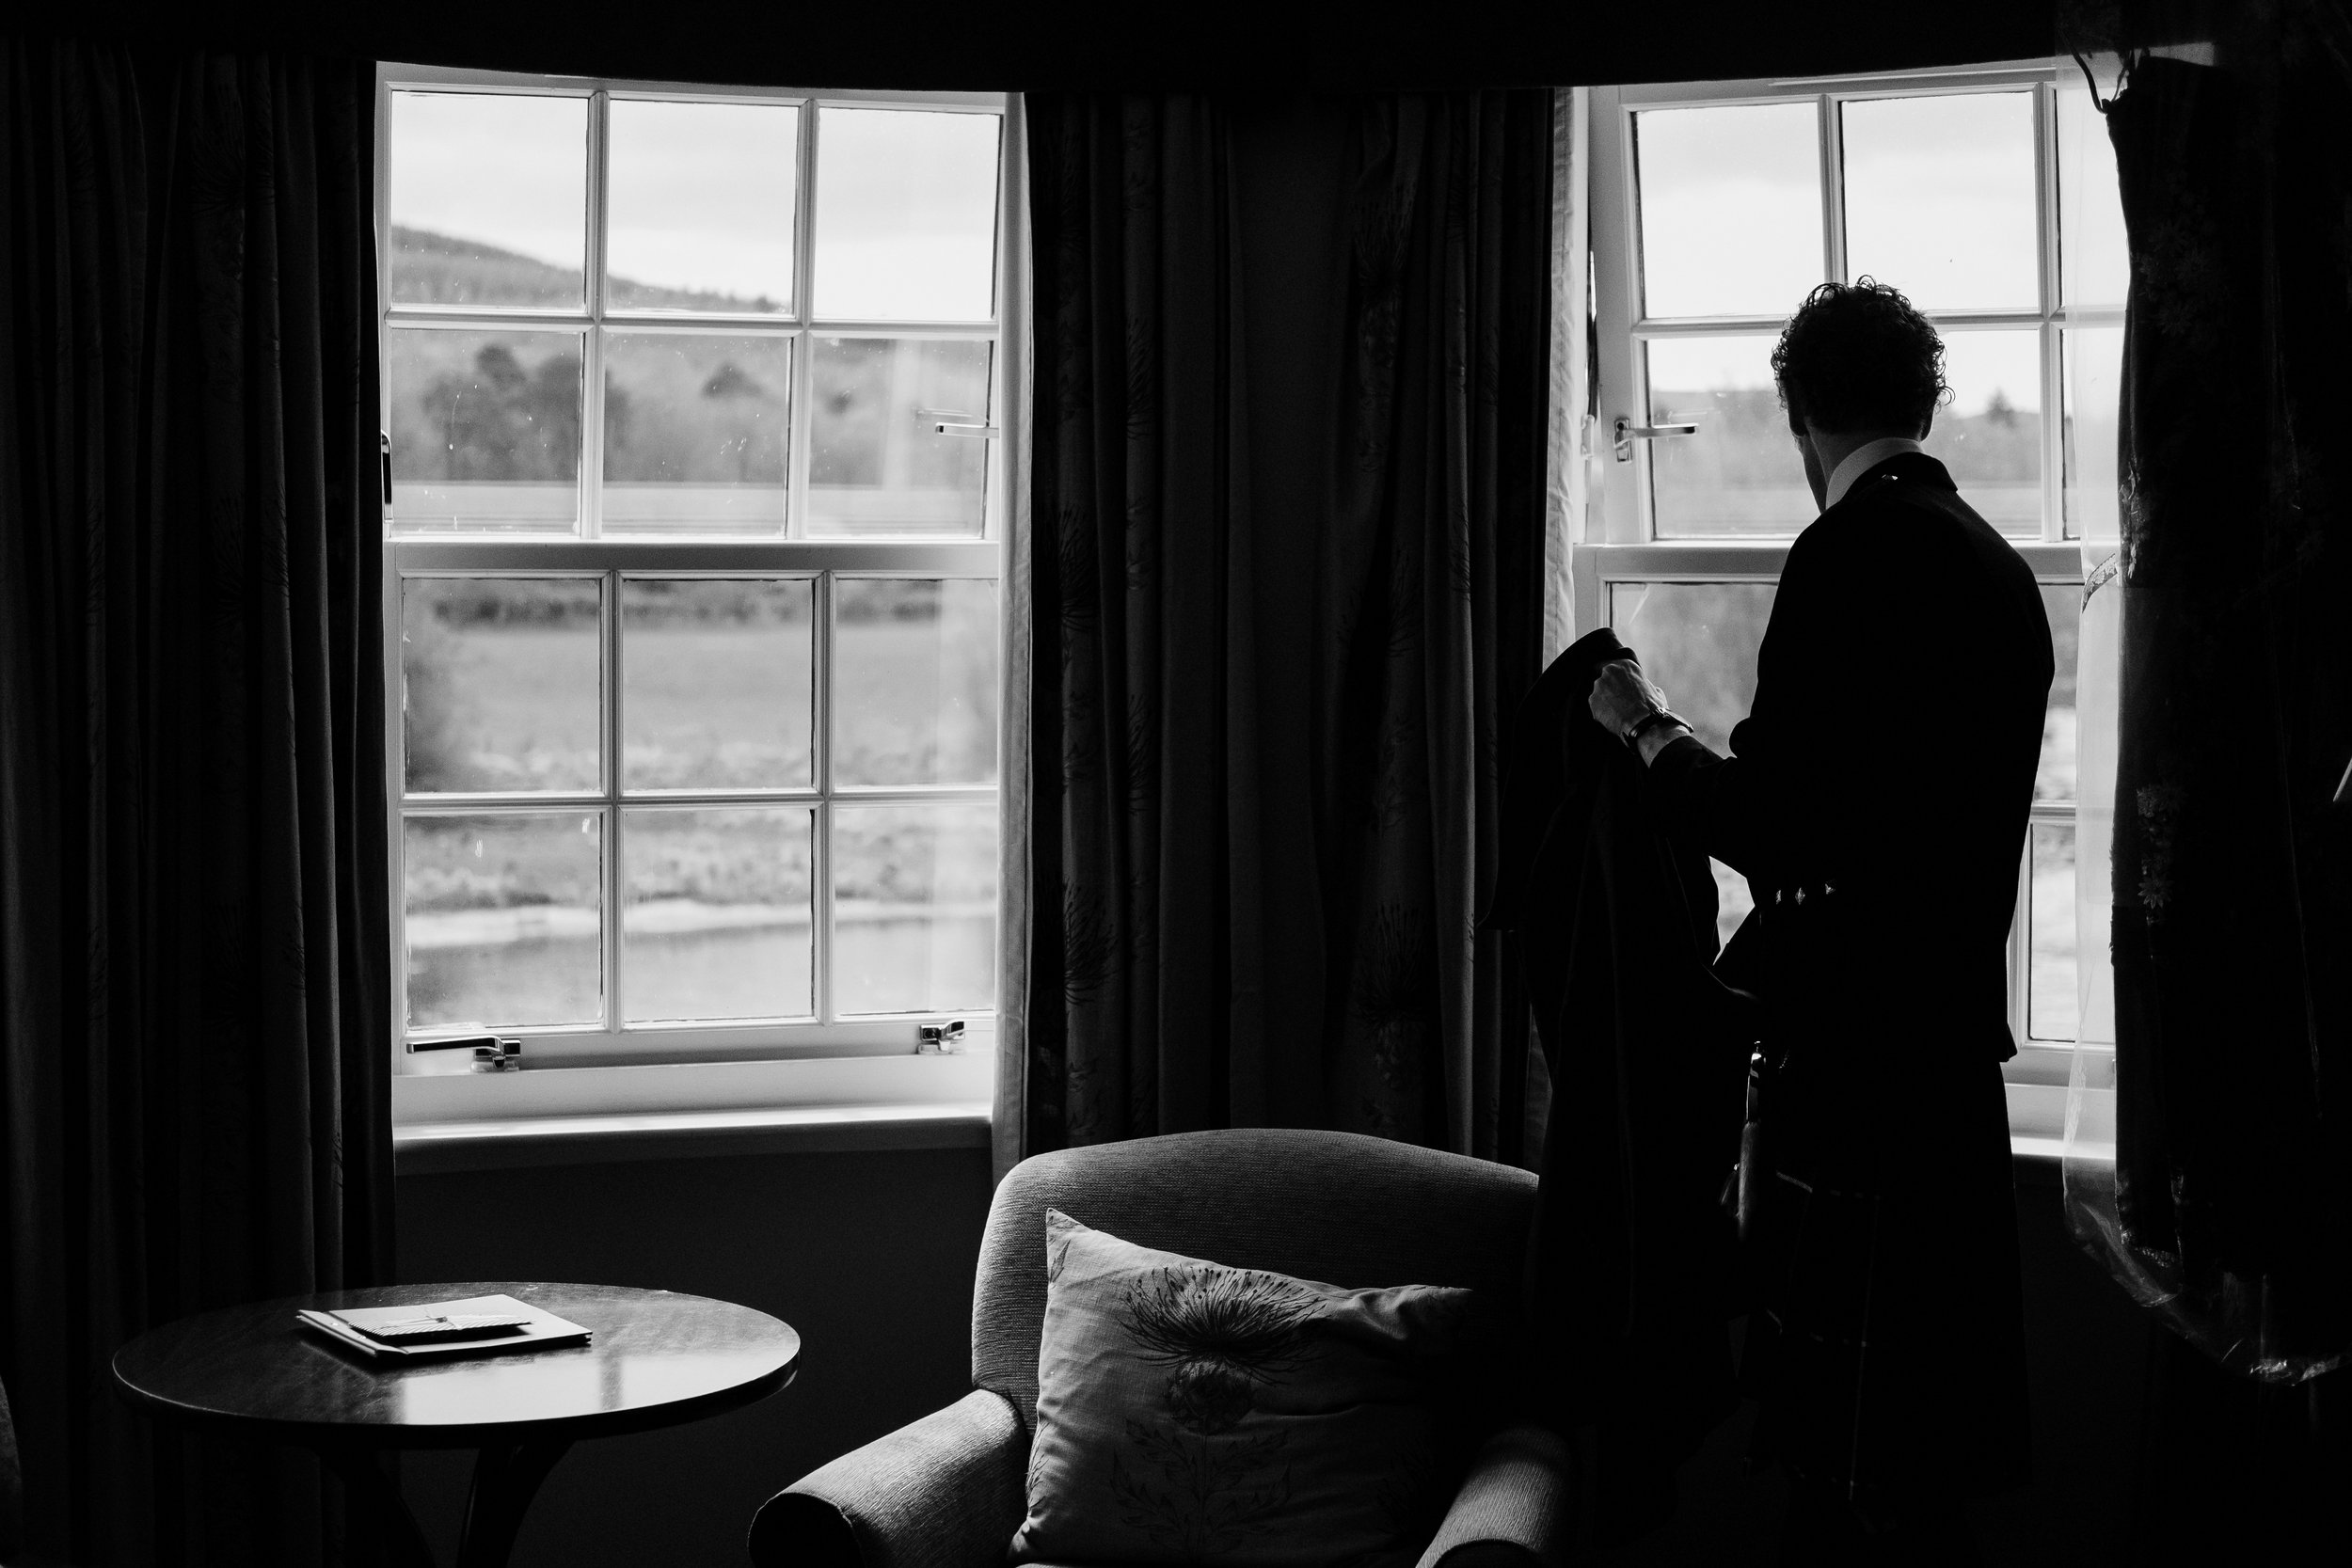 Groom looks out of window